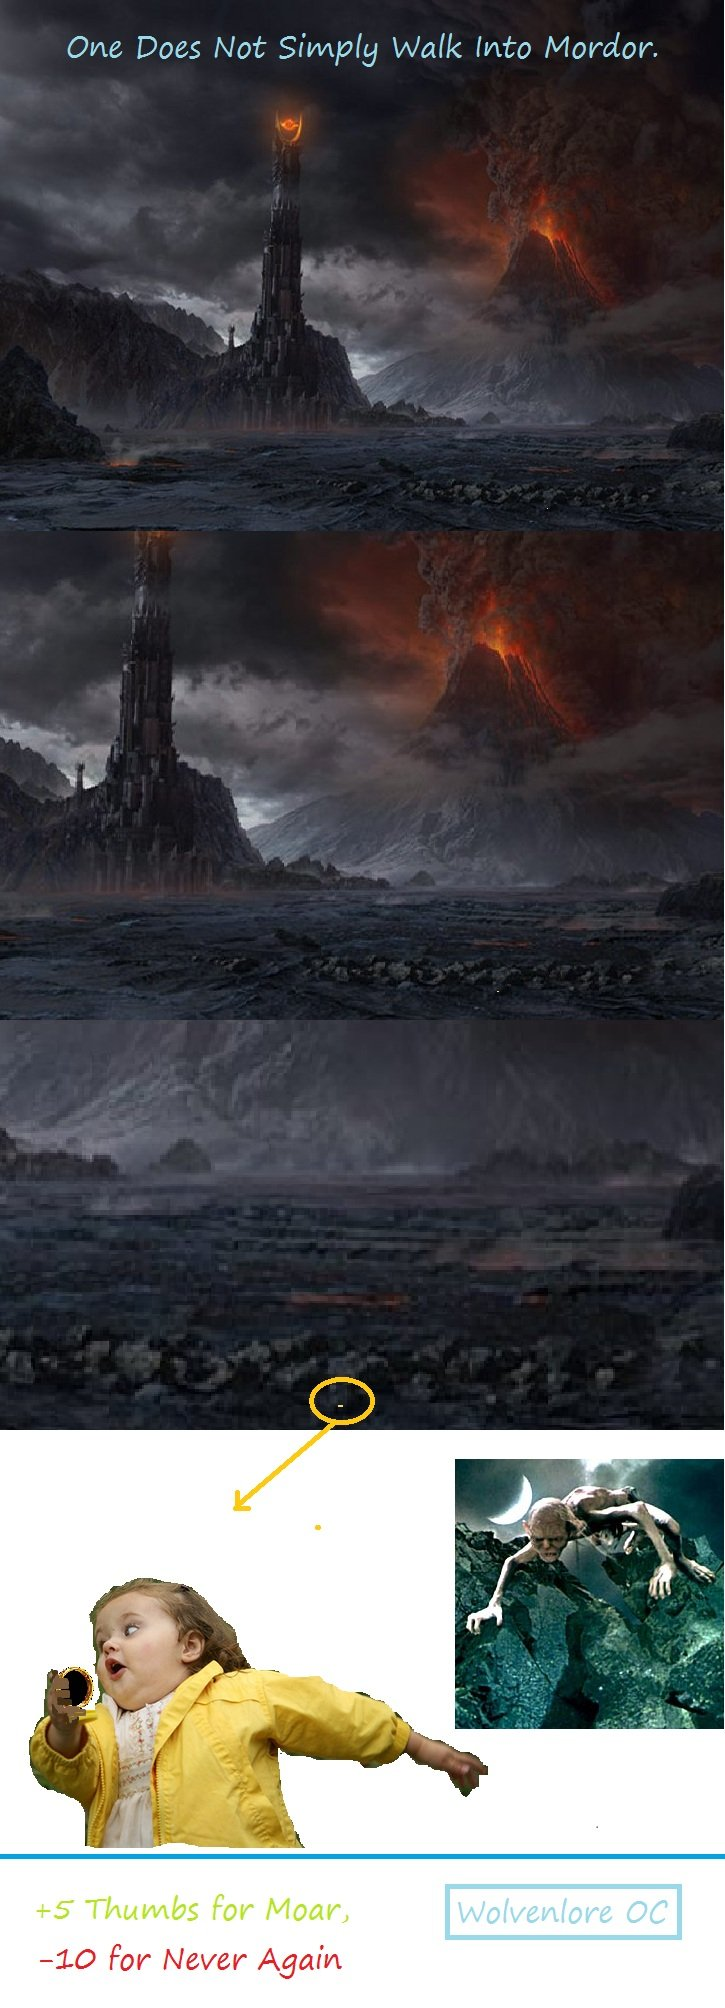 But You Can Run Into Mordor. Another OC I made... The last one i made got -4 Thumbs... Please rate, even if it makes you just smile. A Front Page would be so gr